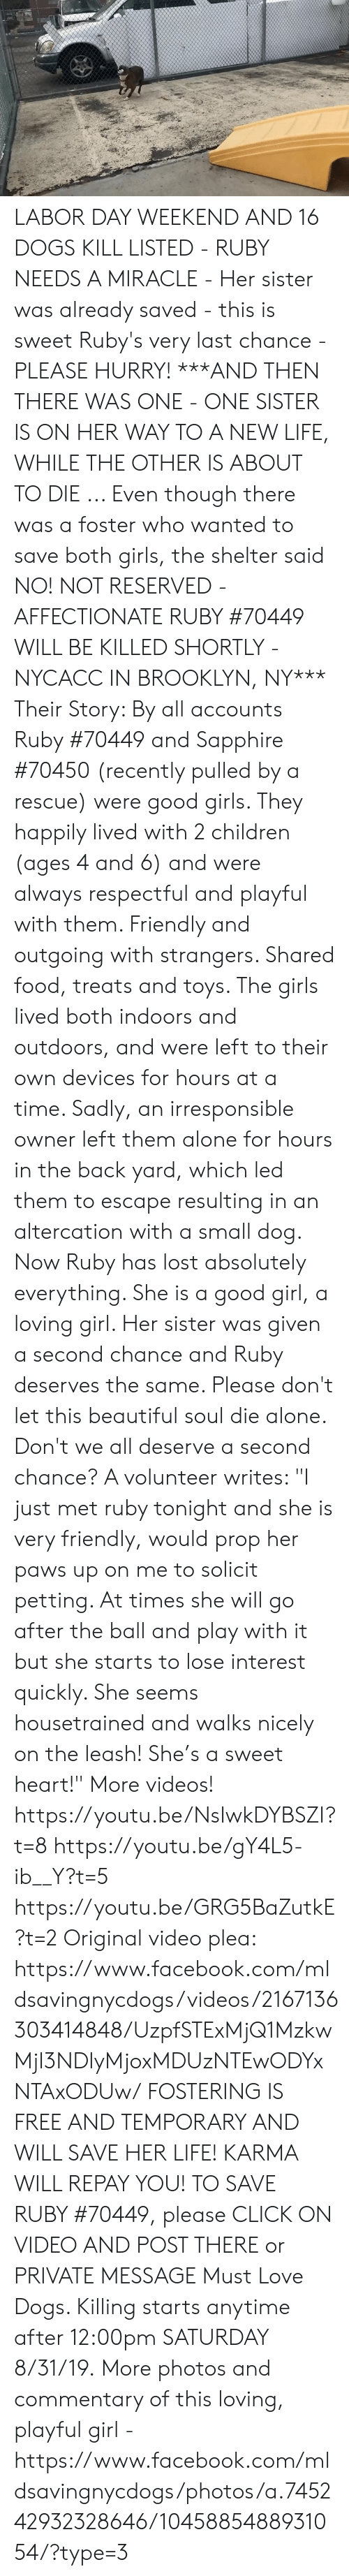 """Being Alone, Beautiful, and Children: LABOR DAY WEEKEND AND 16 DOGS KILL LISTED - RUBY NEEDS A MIRACLE - Her sister was already saved - this is sweet Ruby's very last chance - PLEASE HURRY!  ***AND THEN THERE WAS ONE - ONE SISTER IS ON HER WAY TO A NEW LIFE, WHILE THE OTHER IS ABOUT TO DIE ... Even though there was a foster who wanted to save both girls, the shelter said NO! NOT RESERVED - AFFECTIONATE RUBY #70449 WILL BE KILLED SHORTLY - NYCACC IN BROOKLYN, NY***   Their Story: By all accounts Ruby #70449 and Sapphire #70450 (recently pulled by a rescue) were good girls. They happily lived with 2 children (ages 4 and 6) and were always respectful and playful with them. Friendly and outgoing with strangers. Shared food, treats and toys. The girls lived both indoors and outdoors, and were left to their own devices for hours at a time. Sadly, an irresponsible owner left them alone for hours in the back yard, which led them to escape resulting in an altercation with a small dog. Now Ruby has lost absolutely everything. She is a good girl, a loving girl. Her sister was given a second chance and Ruby deserves the same. Please don't let this beautiful soul die alone. Don't we all deserve a second chance?   A volunteer writes: """"I just met ruby tonight and she is very friendly, would prop her paws up on me to solicit petting. At times she will go after the ball and play with it but she starts to lose interest quickly. She seems housetrained and walks nicely on the leash! She's a sweet heart!""""  More videos! https://youtu.be/NsIwkDYBSZI?t=8 https://youtu.be/gY4L5-ib__Y?t=5  https://youtu.be/GRG5BaZutkE?t=2  Original video plea: https://www.facebook.com/mldsavingnycdogs/videos/2167136303414848/UzpfSTExMjQ1MzkwMjI3NDIyMjoxMDUzNTEwODYxNTAxODUw/  FOSTERING IS FREE AND TEMPORARY AND WILL SAVE HER LIFE! KARMA WILL REPAY YOU!  TO SAVE RUBY #70449, please CLICK ON VIDEO AND POST THERE or PRIVATE MESSAGE Must Love Dogs.   Killing starts anytime after 12:00pm SATURDAY 8/31/19.  More ph"""